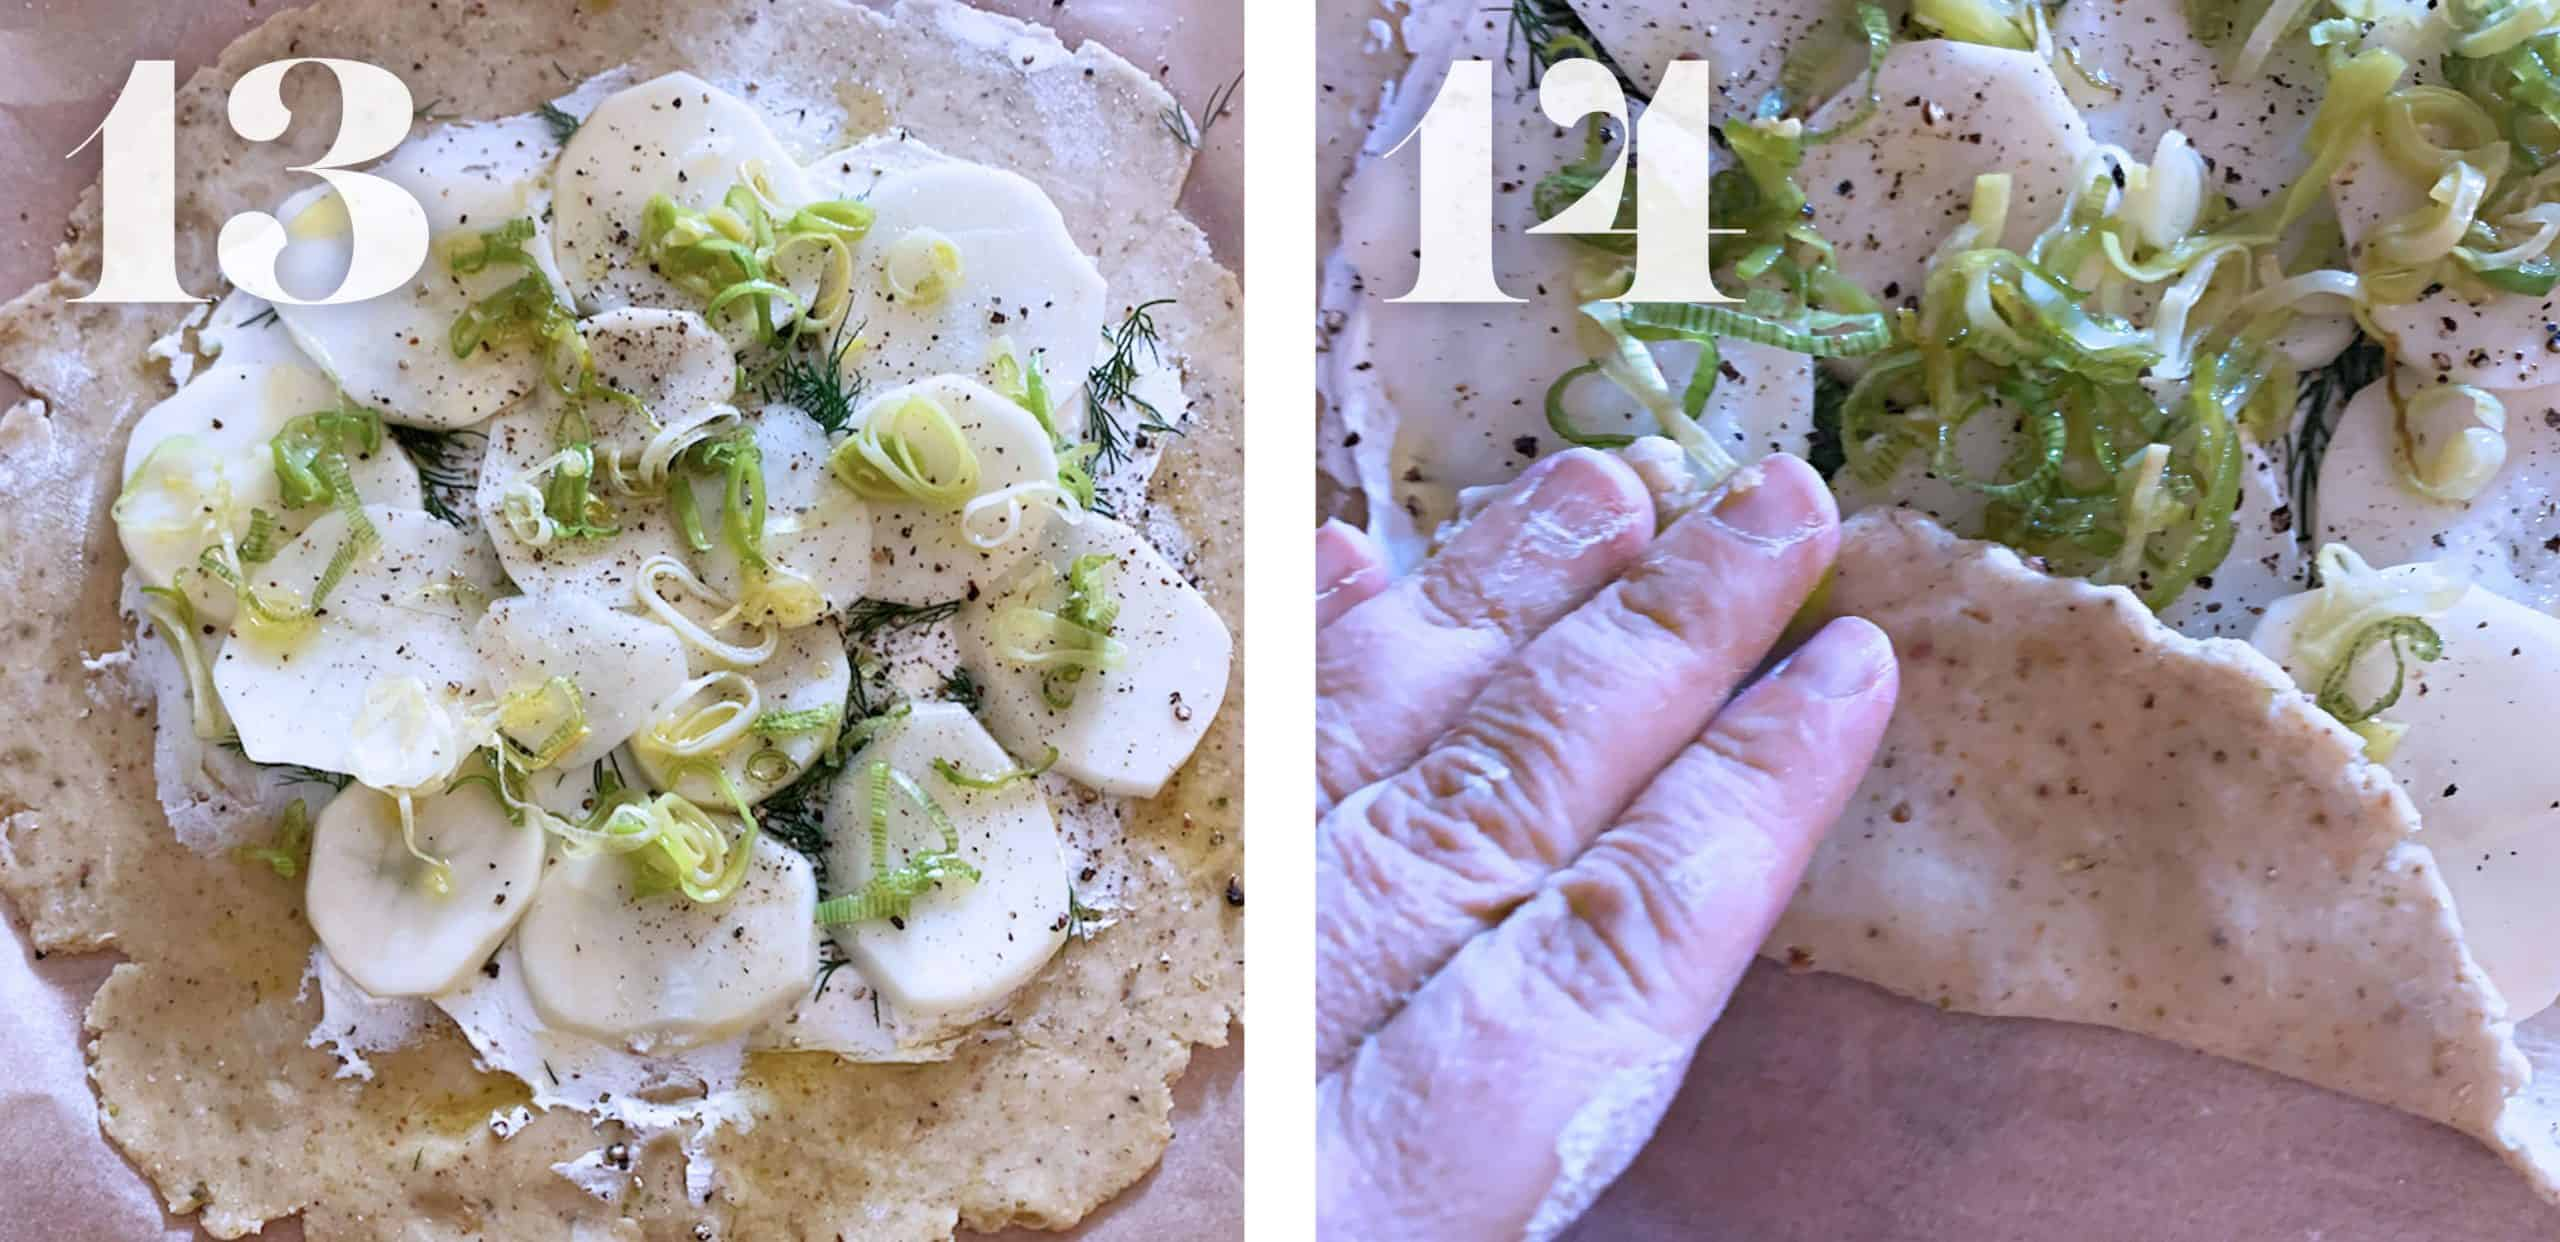 Filling up a galette crust with cheese potatoes leeks and dill. Folding the galette dough.